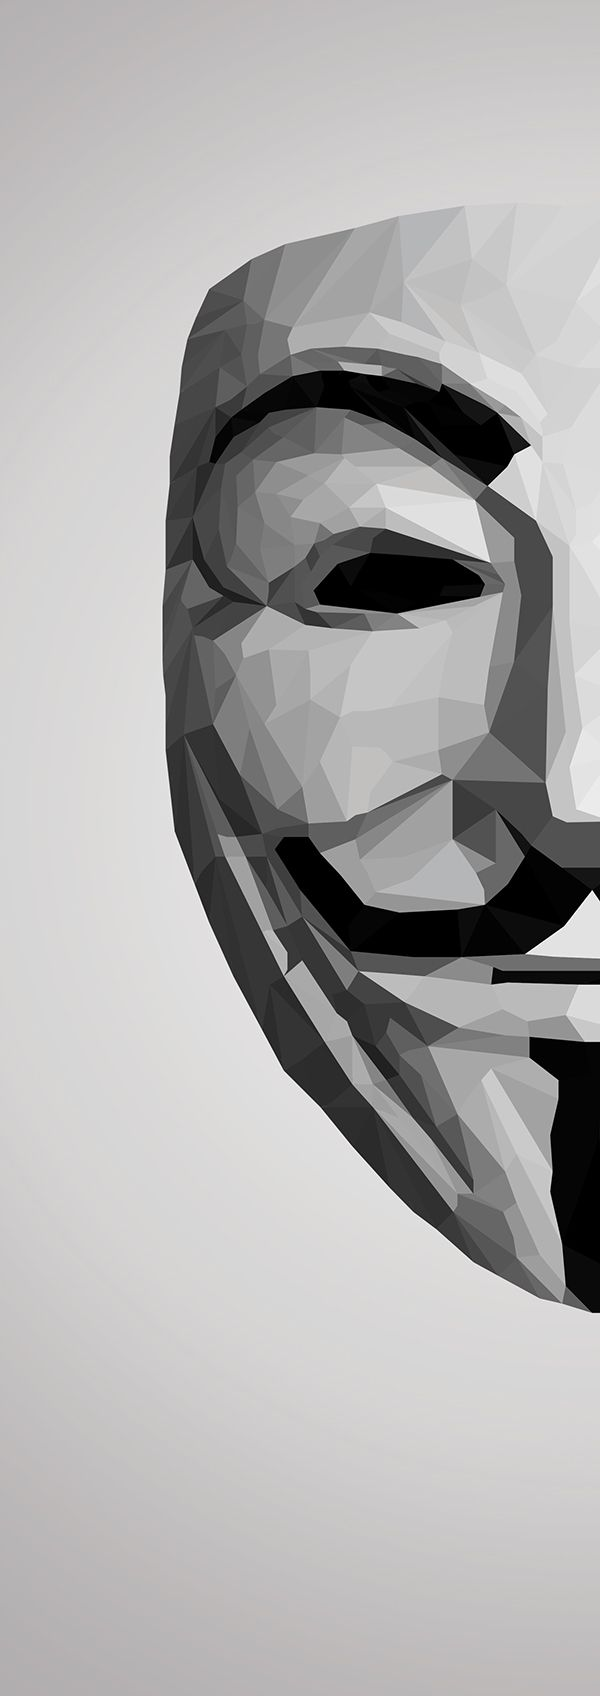 V for Vendetta Mask Low Poly on Behance